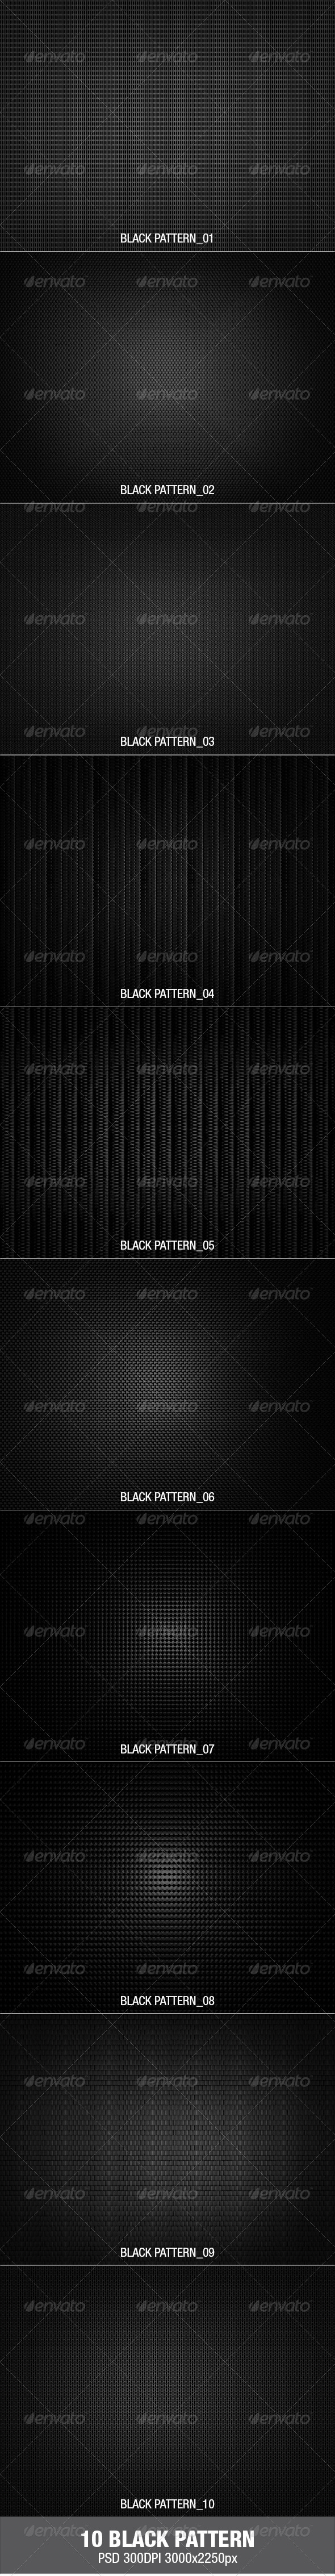 10 Black Pattern - Patterns Backgrounds